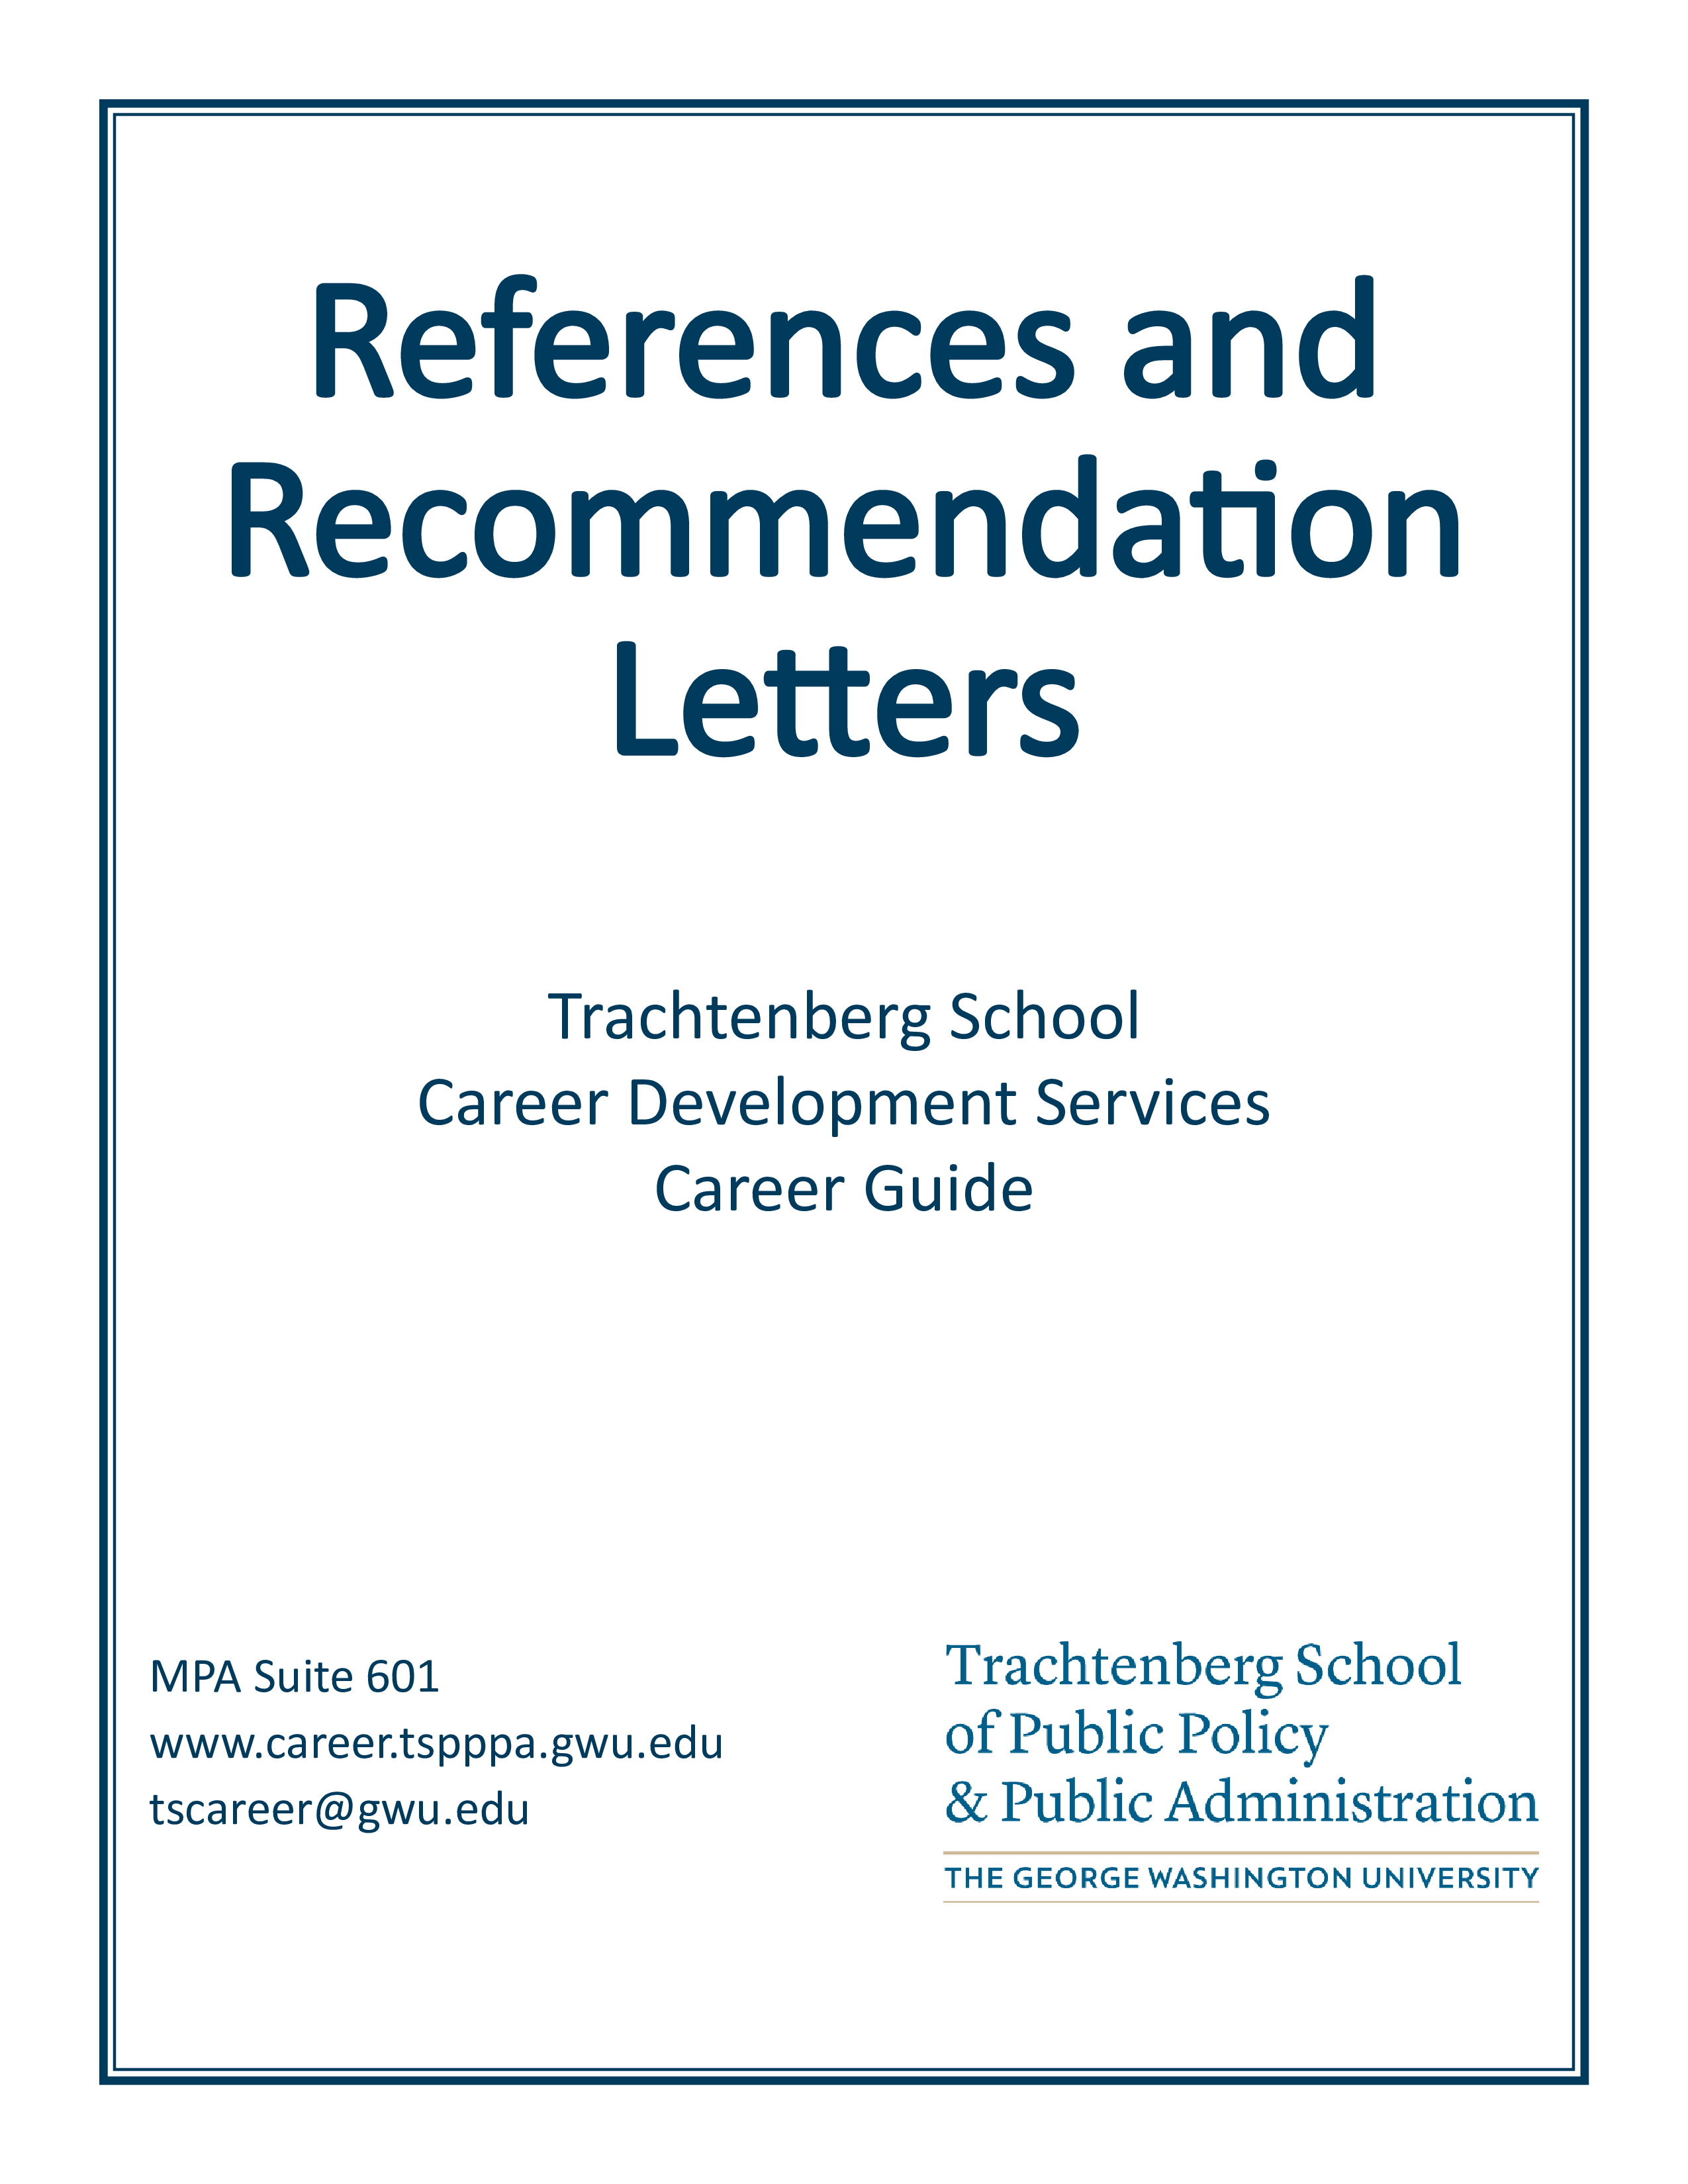 College Recommendation Letter From An Employer How To Write A College Recommendation Letter College Recommendation Letter Letter Of Recommendation Templates